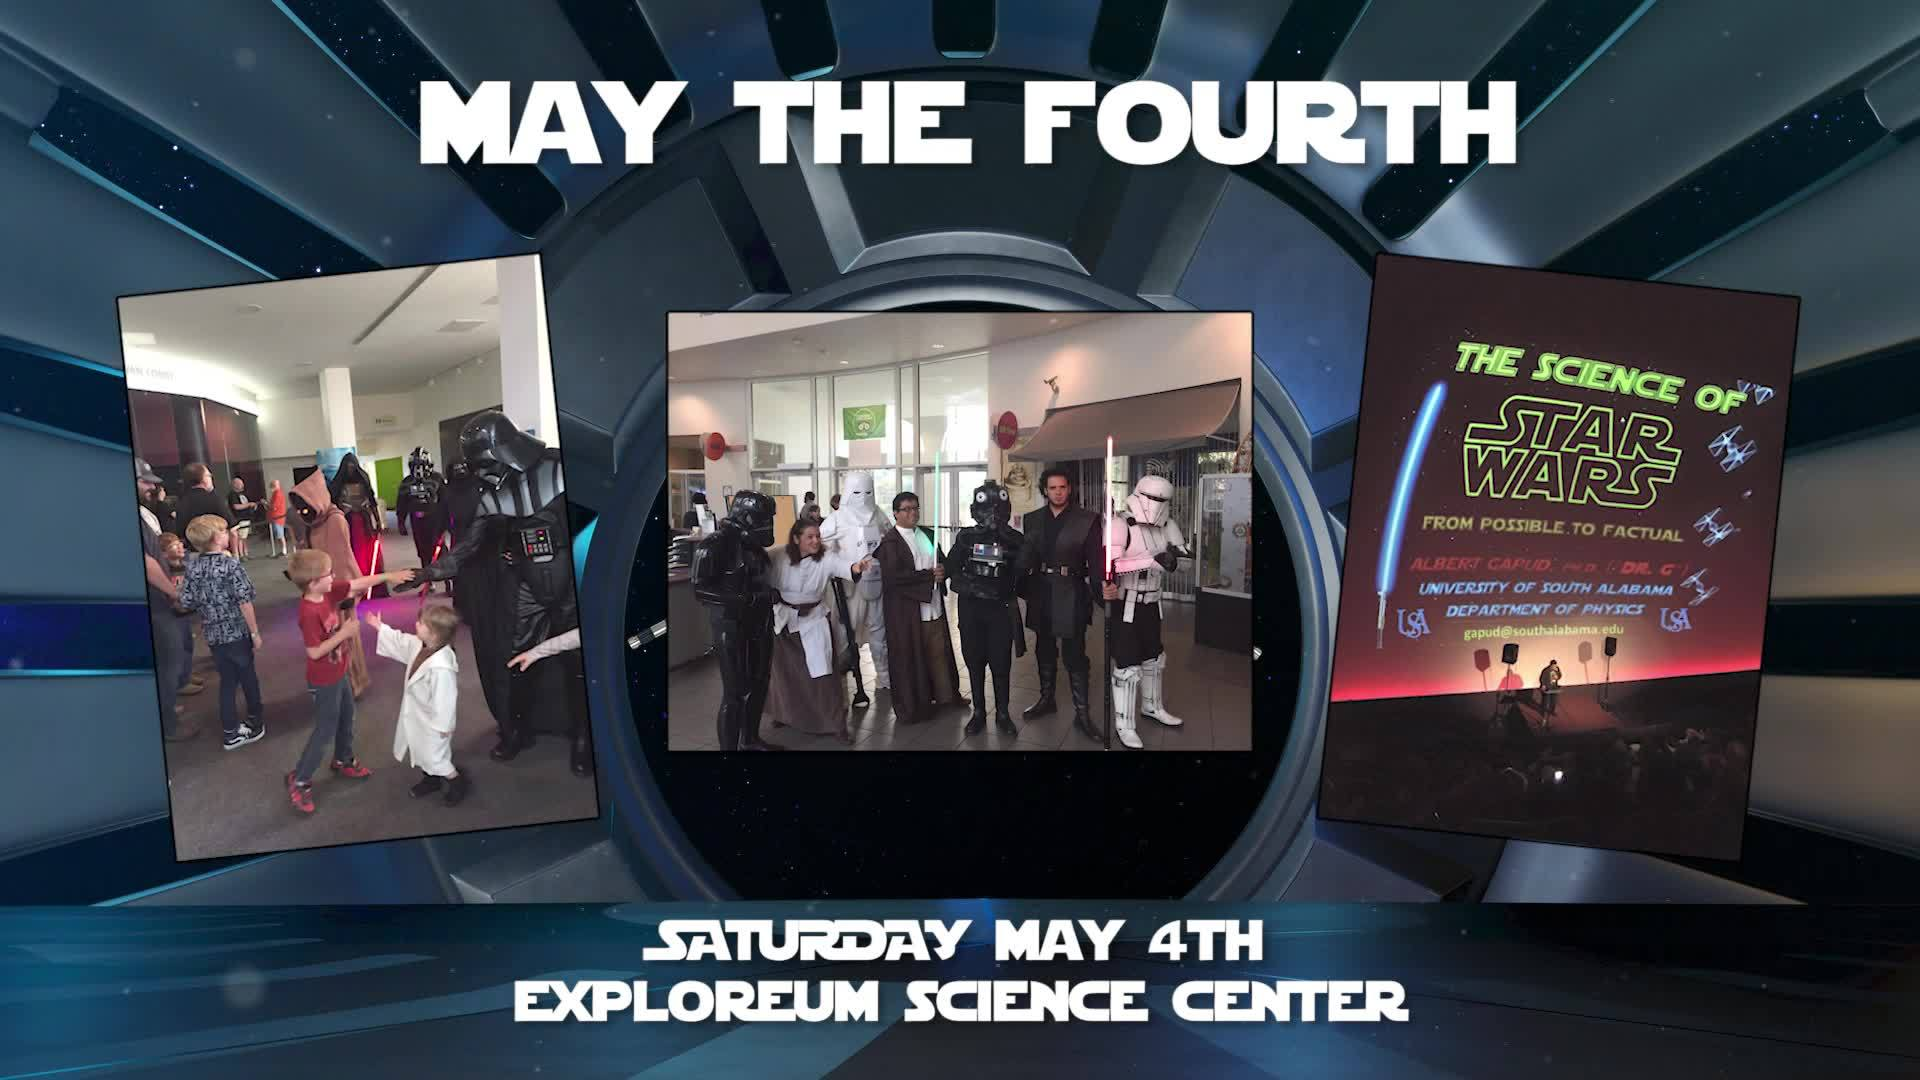 Join The Gulf Coast CW star, Tori B. for a Star Wars celebration at the Gulf Coast Exploreum. Mark your calendars and get your tickets in advance online.